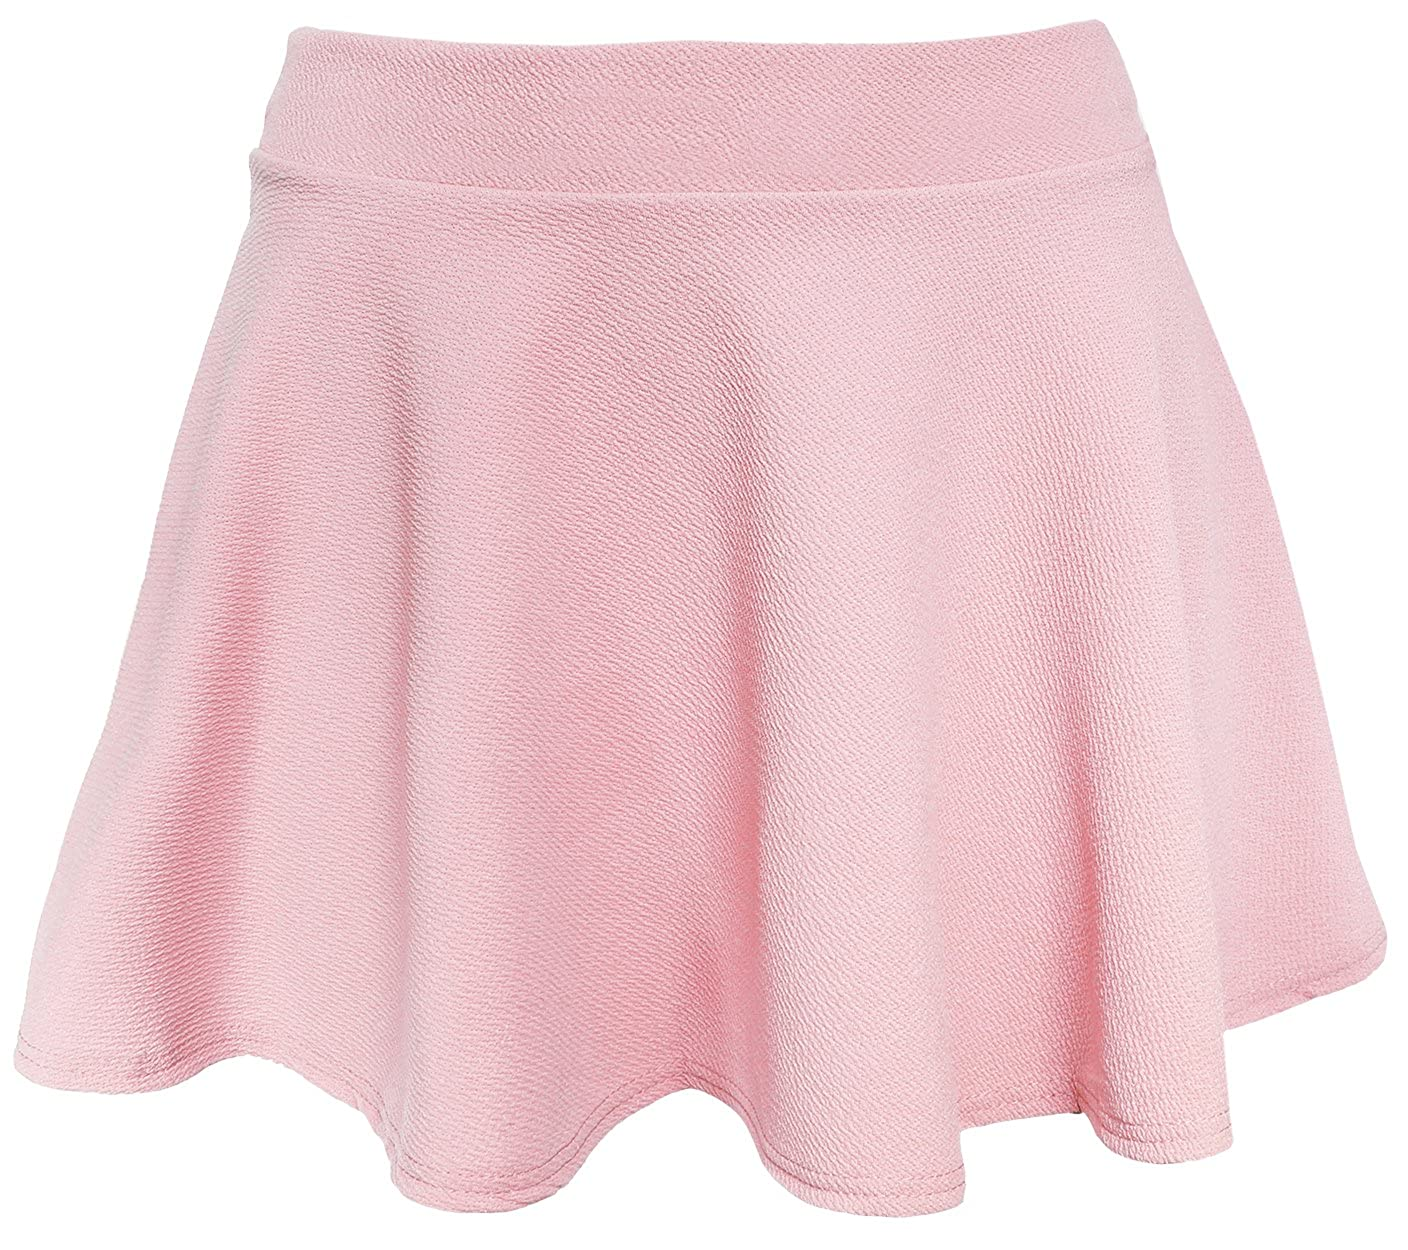 KMystic Womens Textured Flared Skater Skirt